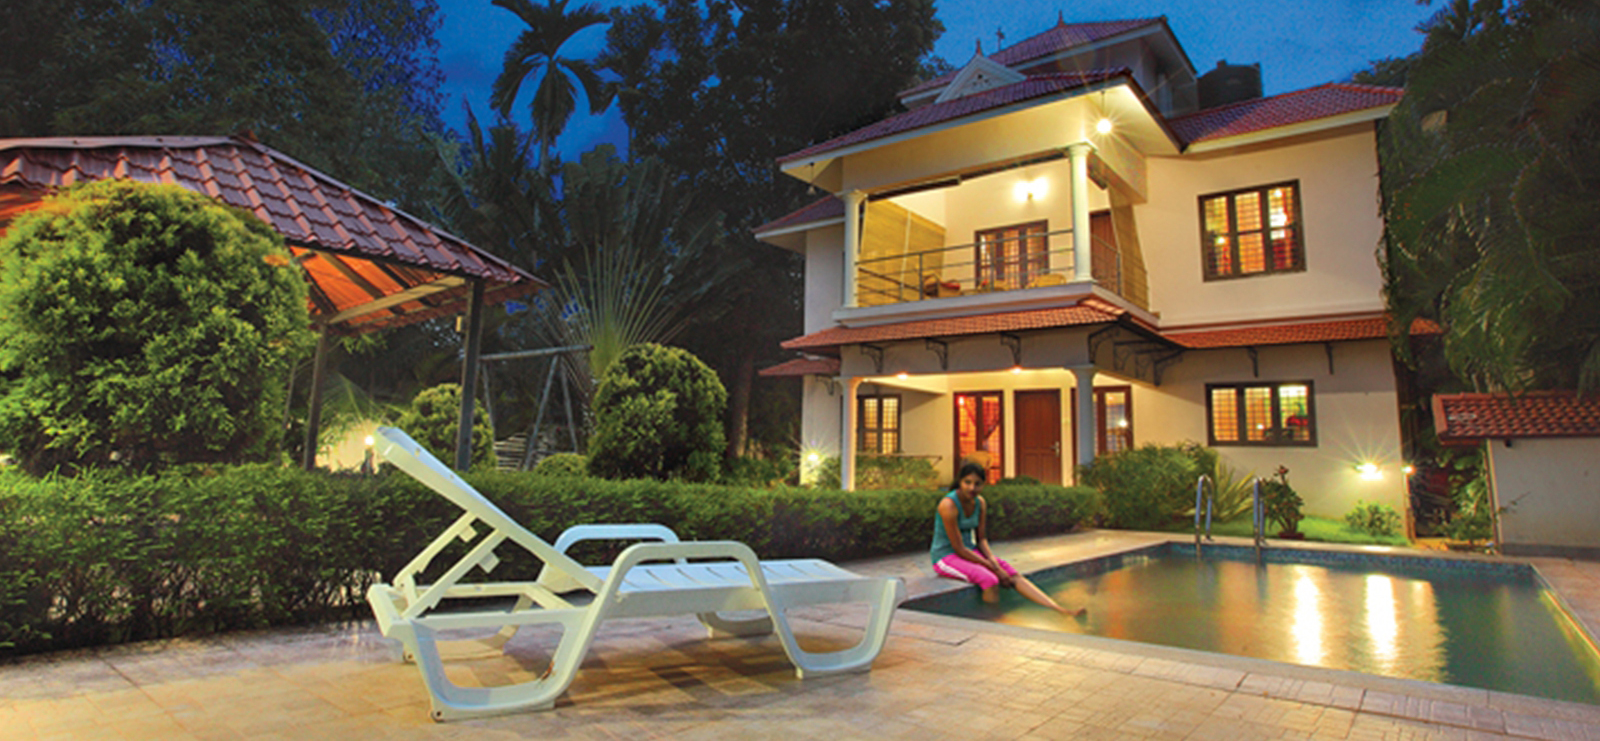 Silver Sands Residency, Hotels, Resorts & House Boa